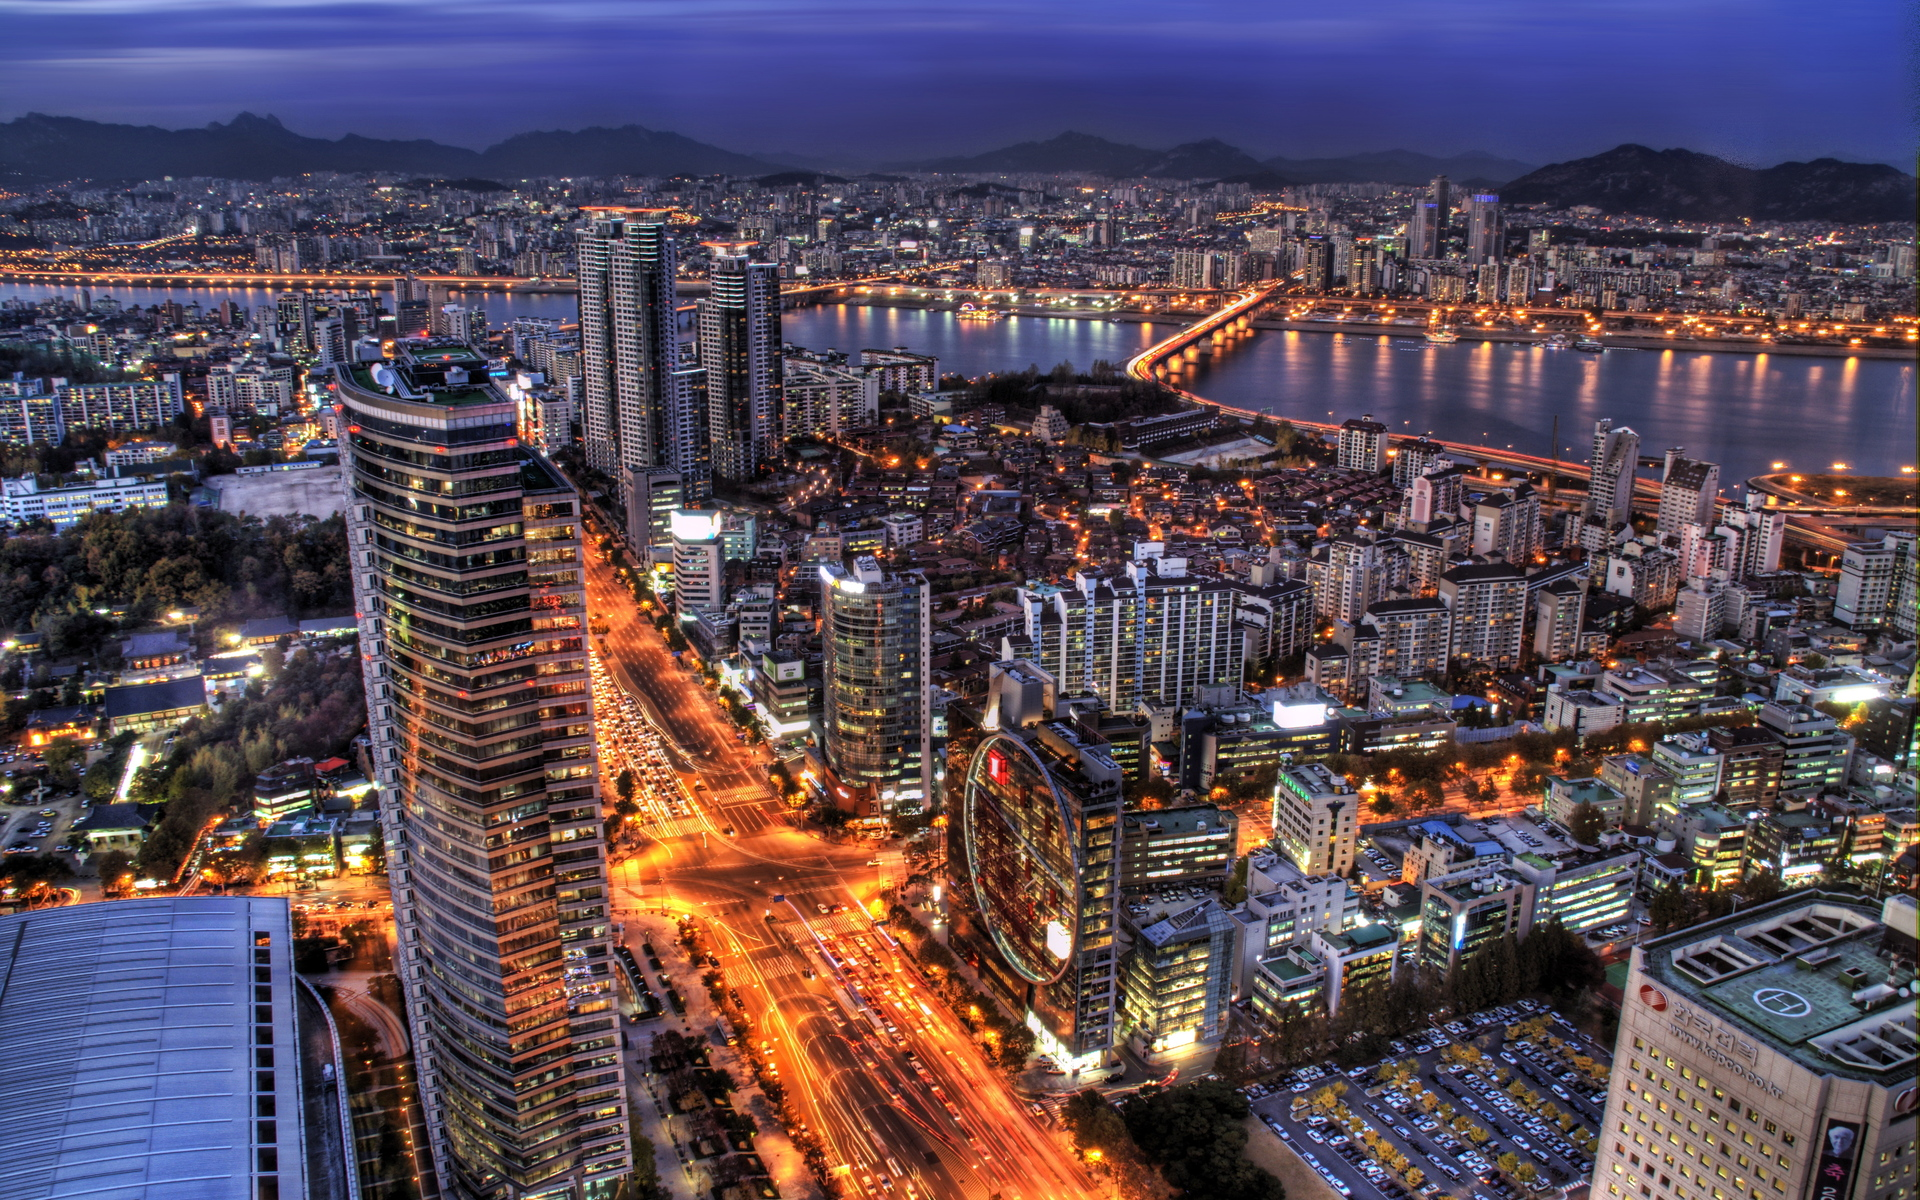 Download Full HD Wallpapers absolutely free for your desktop pc, laptop desktops. Seoul Wallpaper